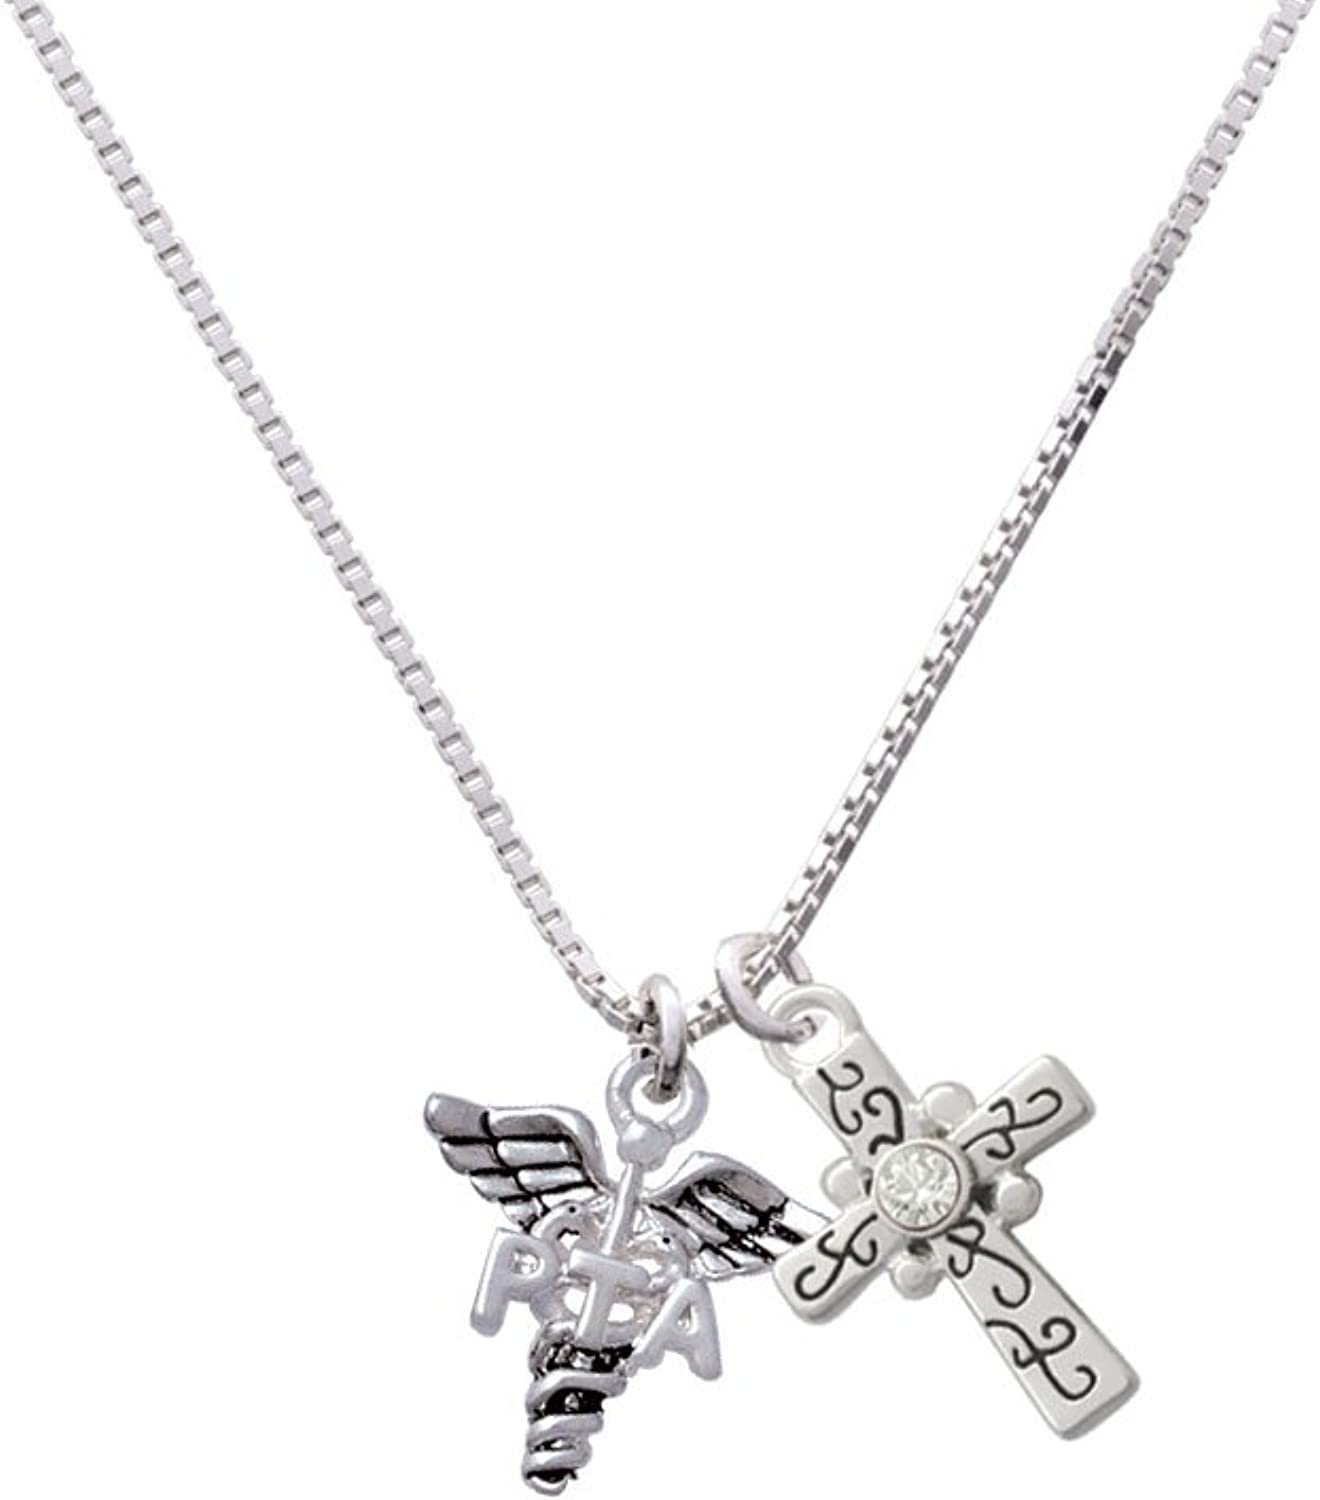 18+2 Delight Jewelry Physical Therapy Caduceus Scroll Cross Necklace